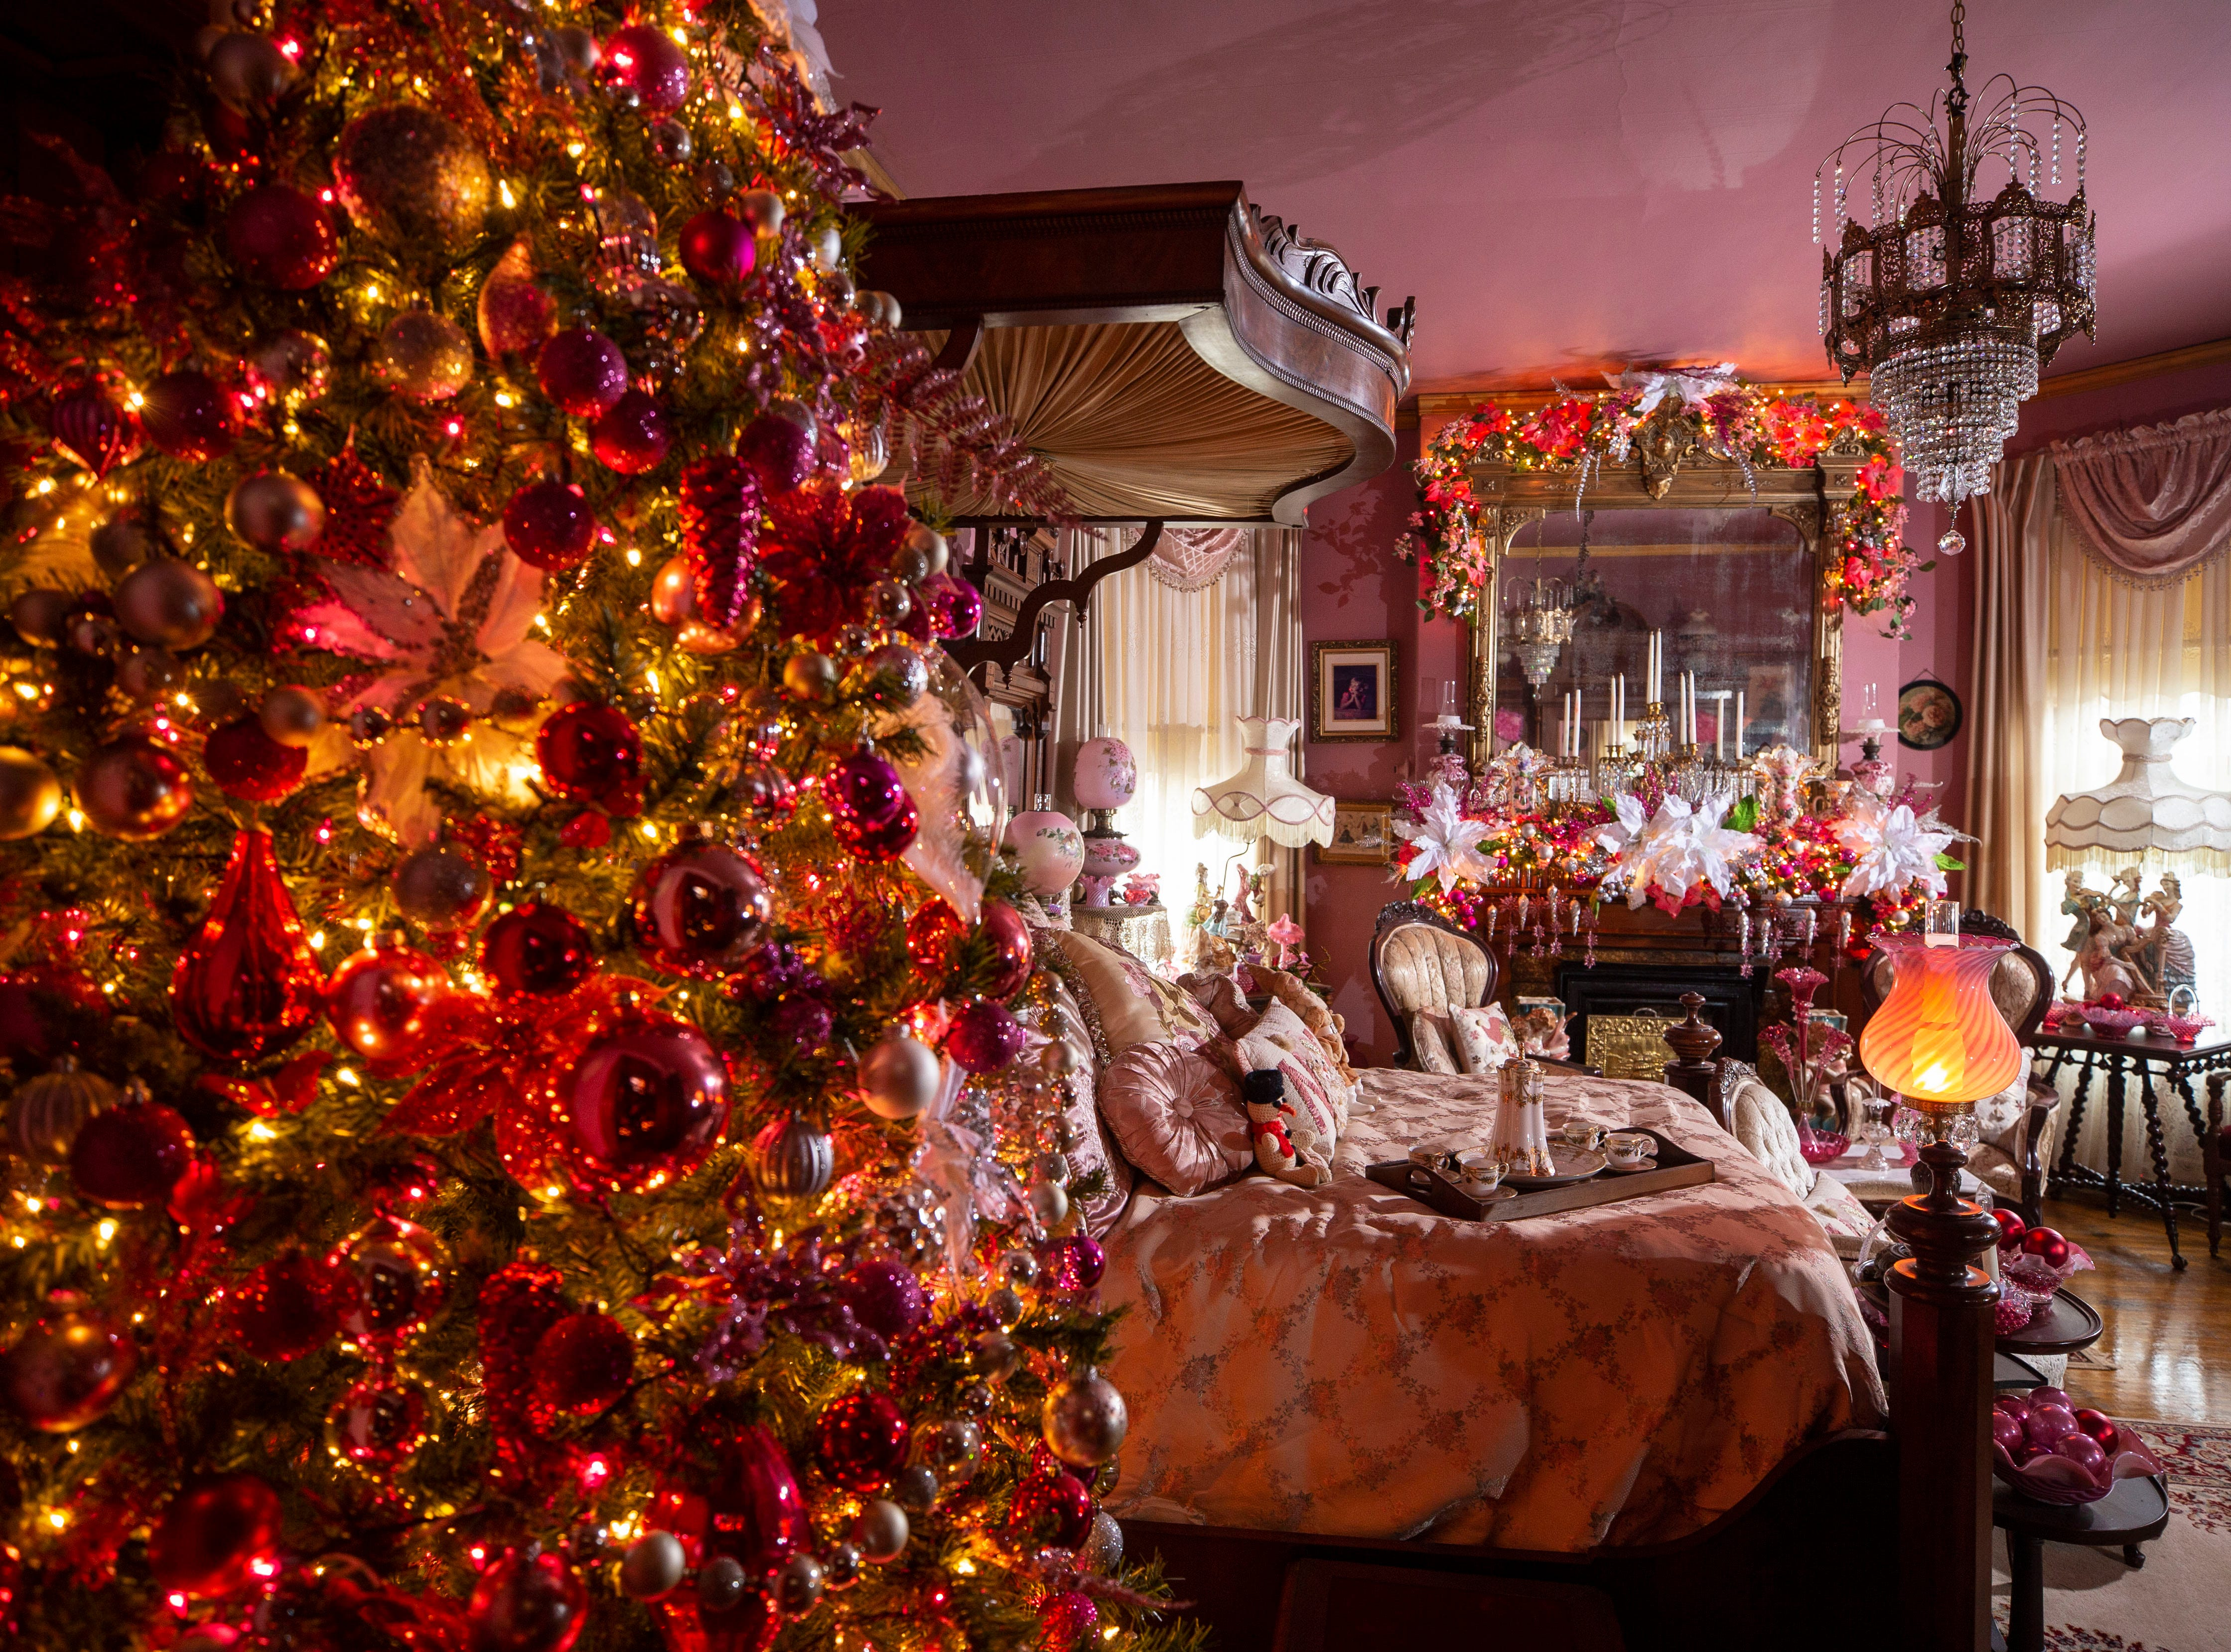 This second floor bedroom features a pink-themed Holiday decorations and tree. Through years of hunting at auctions, David Brown collected hundreds of period-correct antiques.